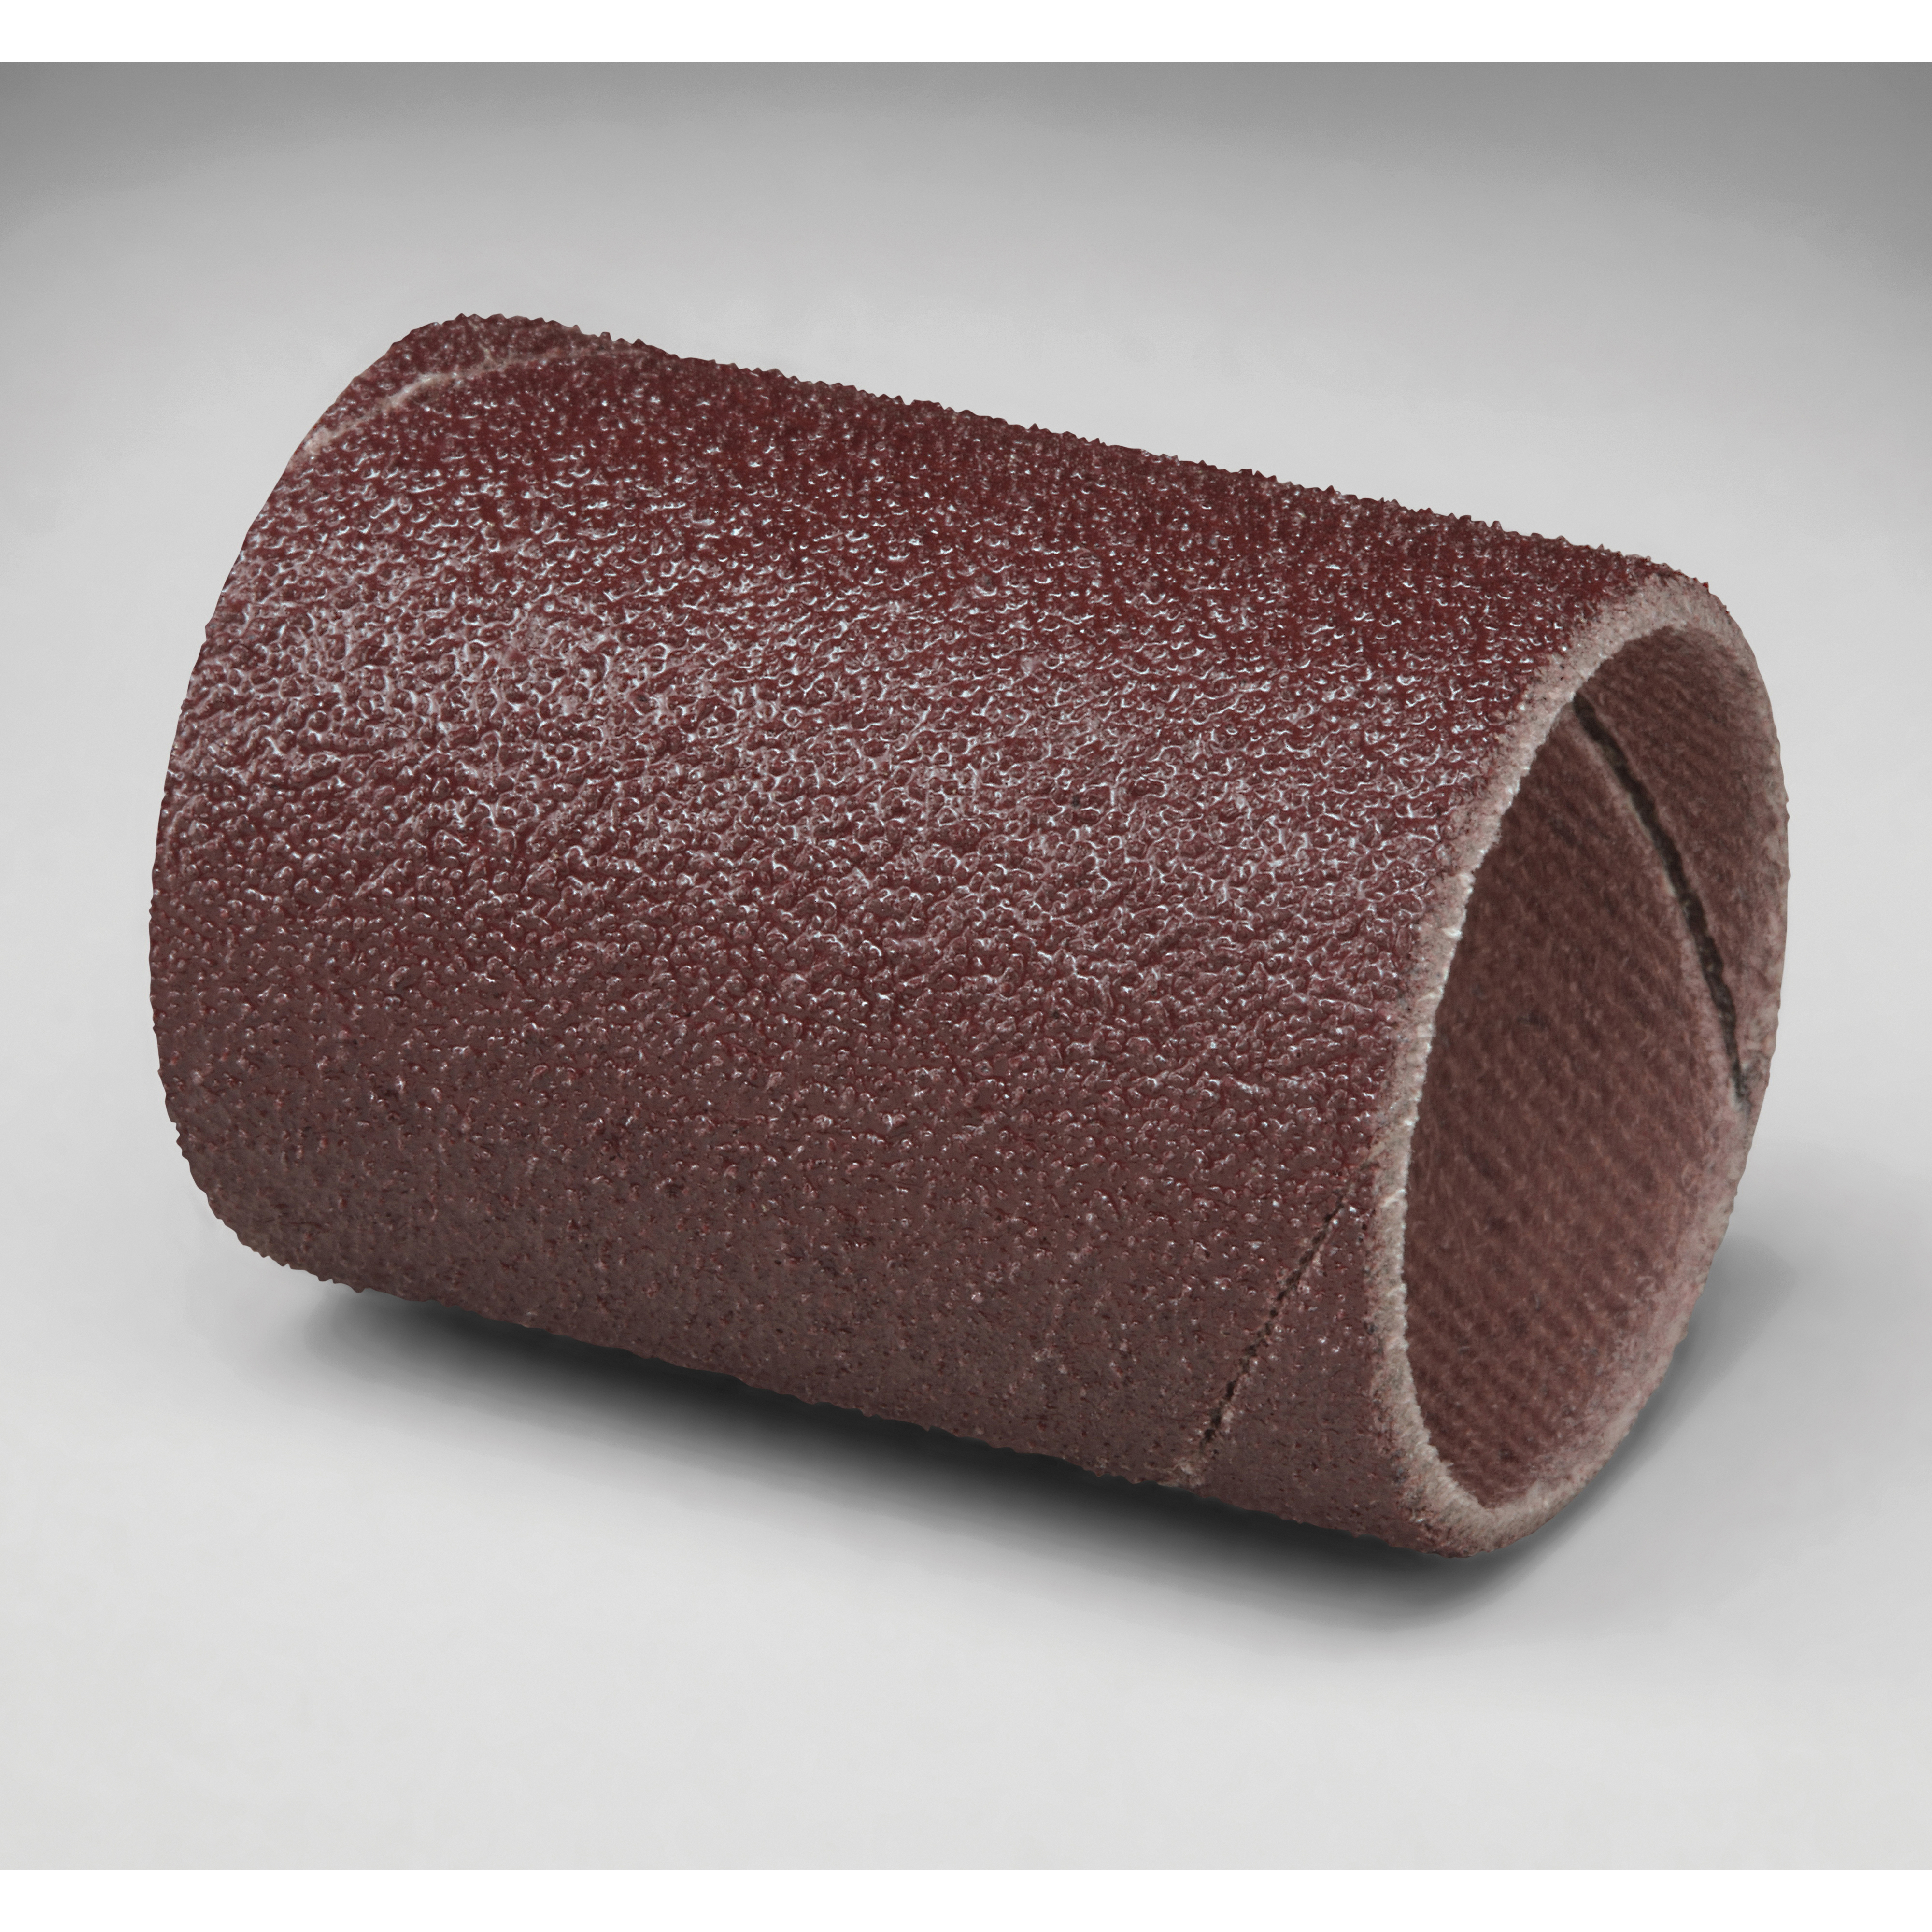 3M™ 051144-11980 341D Coated Spiral Band, 1 in Dia x 1-1/2 in L Band, 60 Grit, Medium Grade, Aluminum Oxide Abrasive